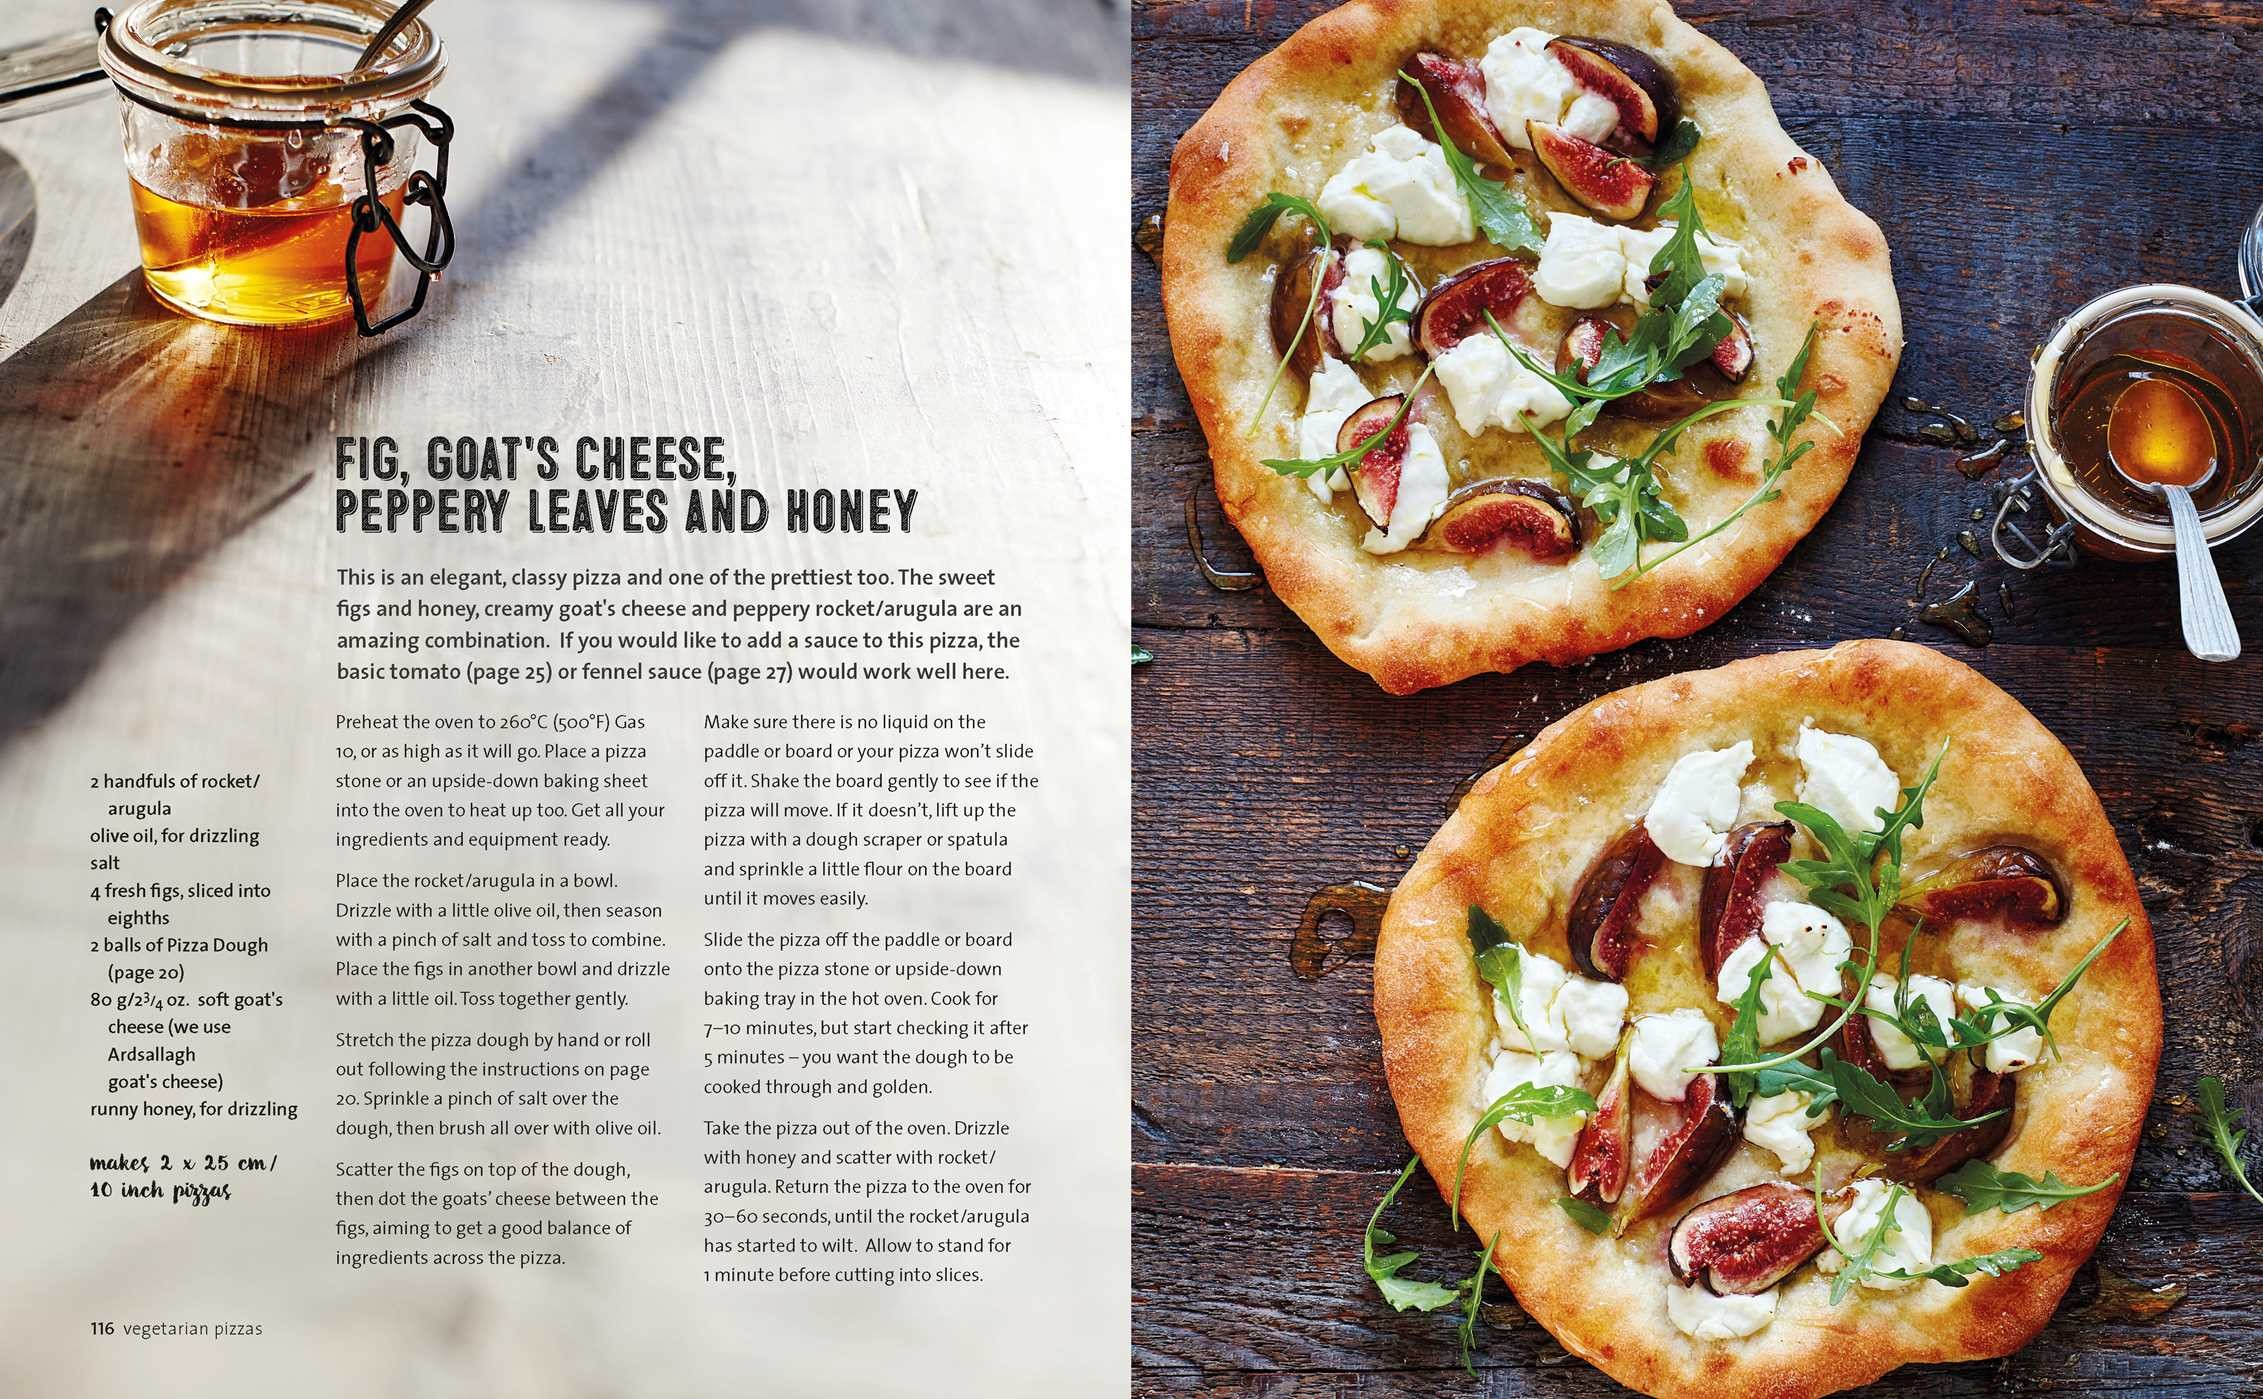 Saturday pizzas from the ballymaloe cookery school 9781849758826.in04